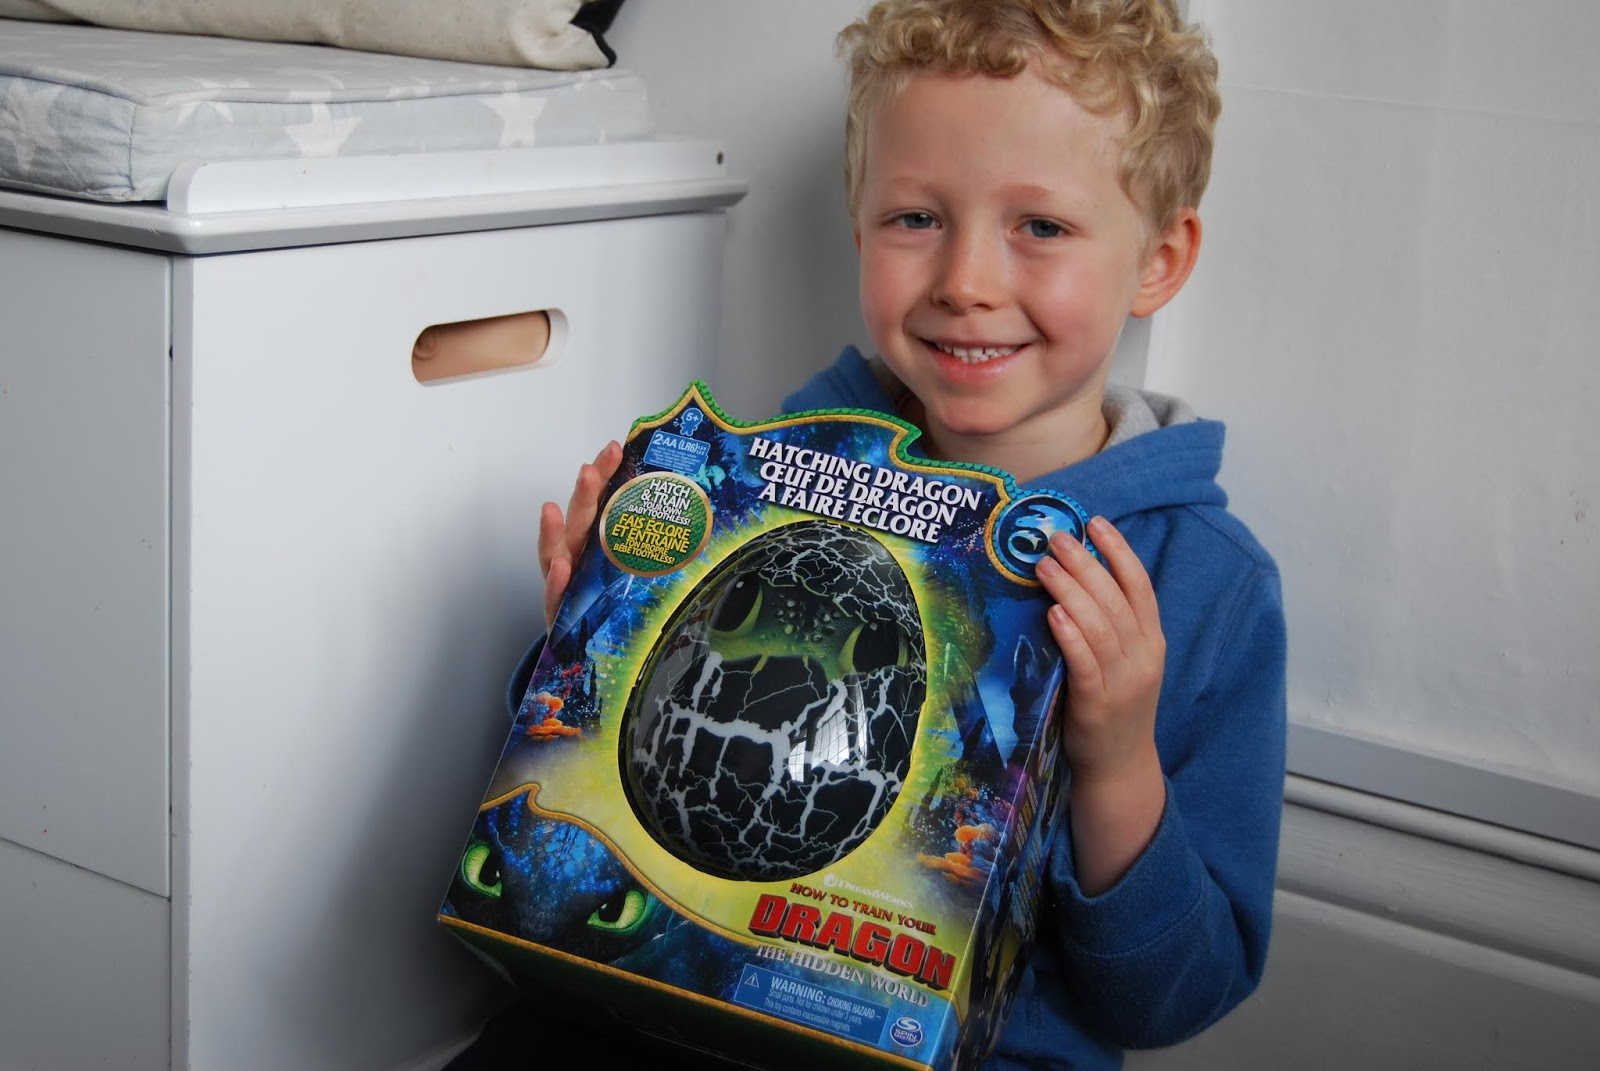 Chic Geek Diary Dreamworks Dragons Hatching Interactive Baby Dragon Toothless Review